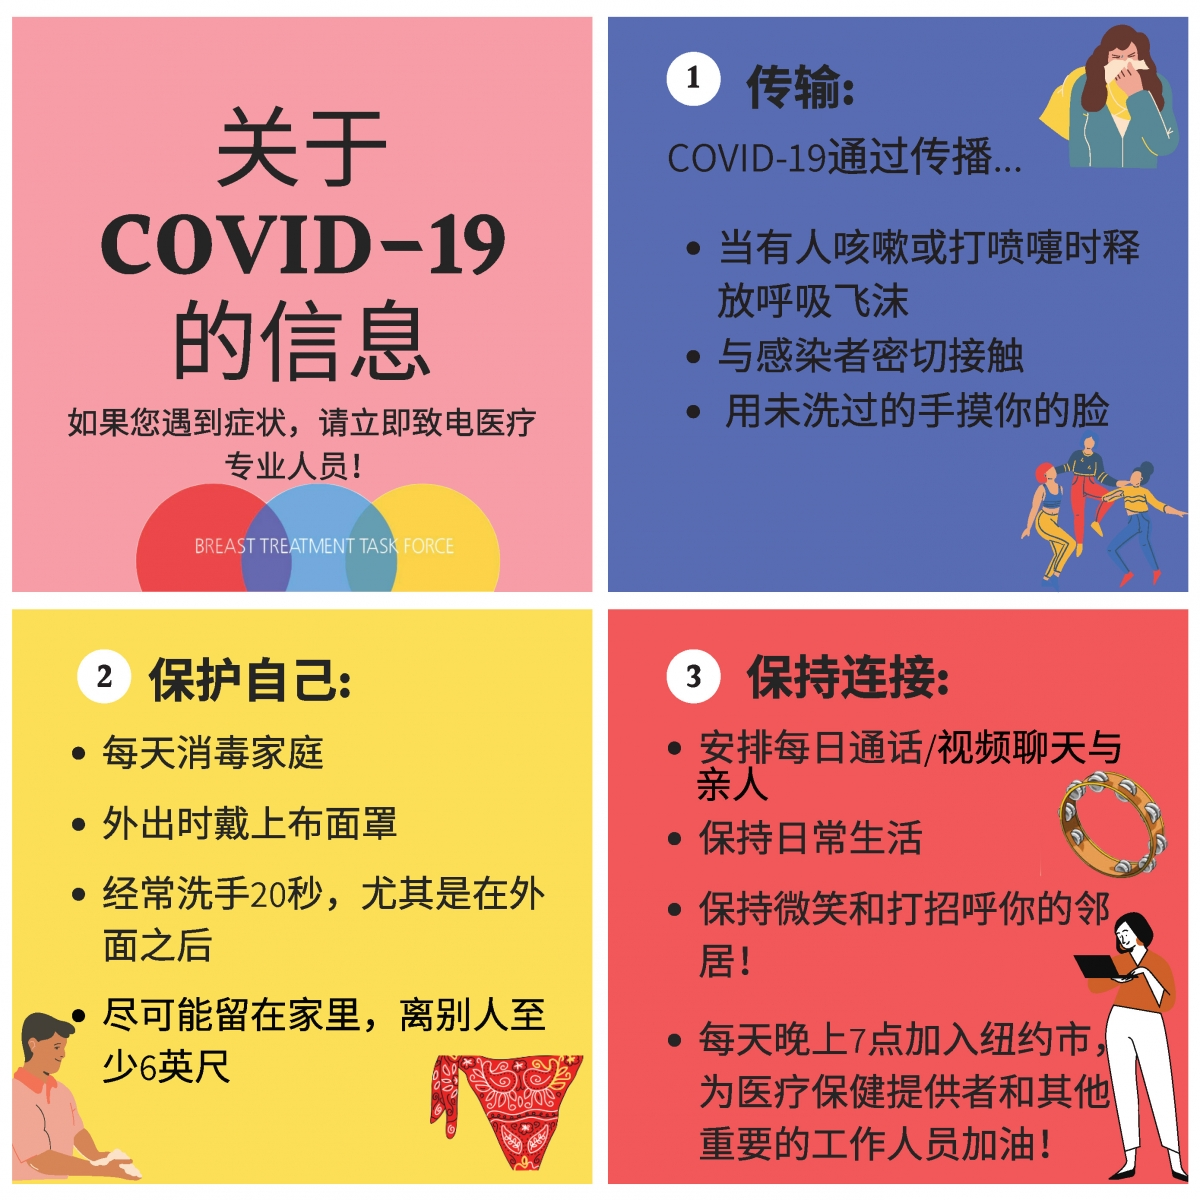 COVID-19_Infographic_Chinese_Page_1